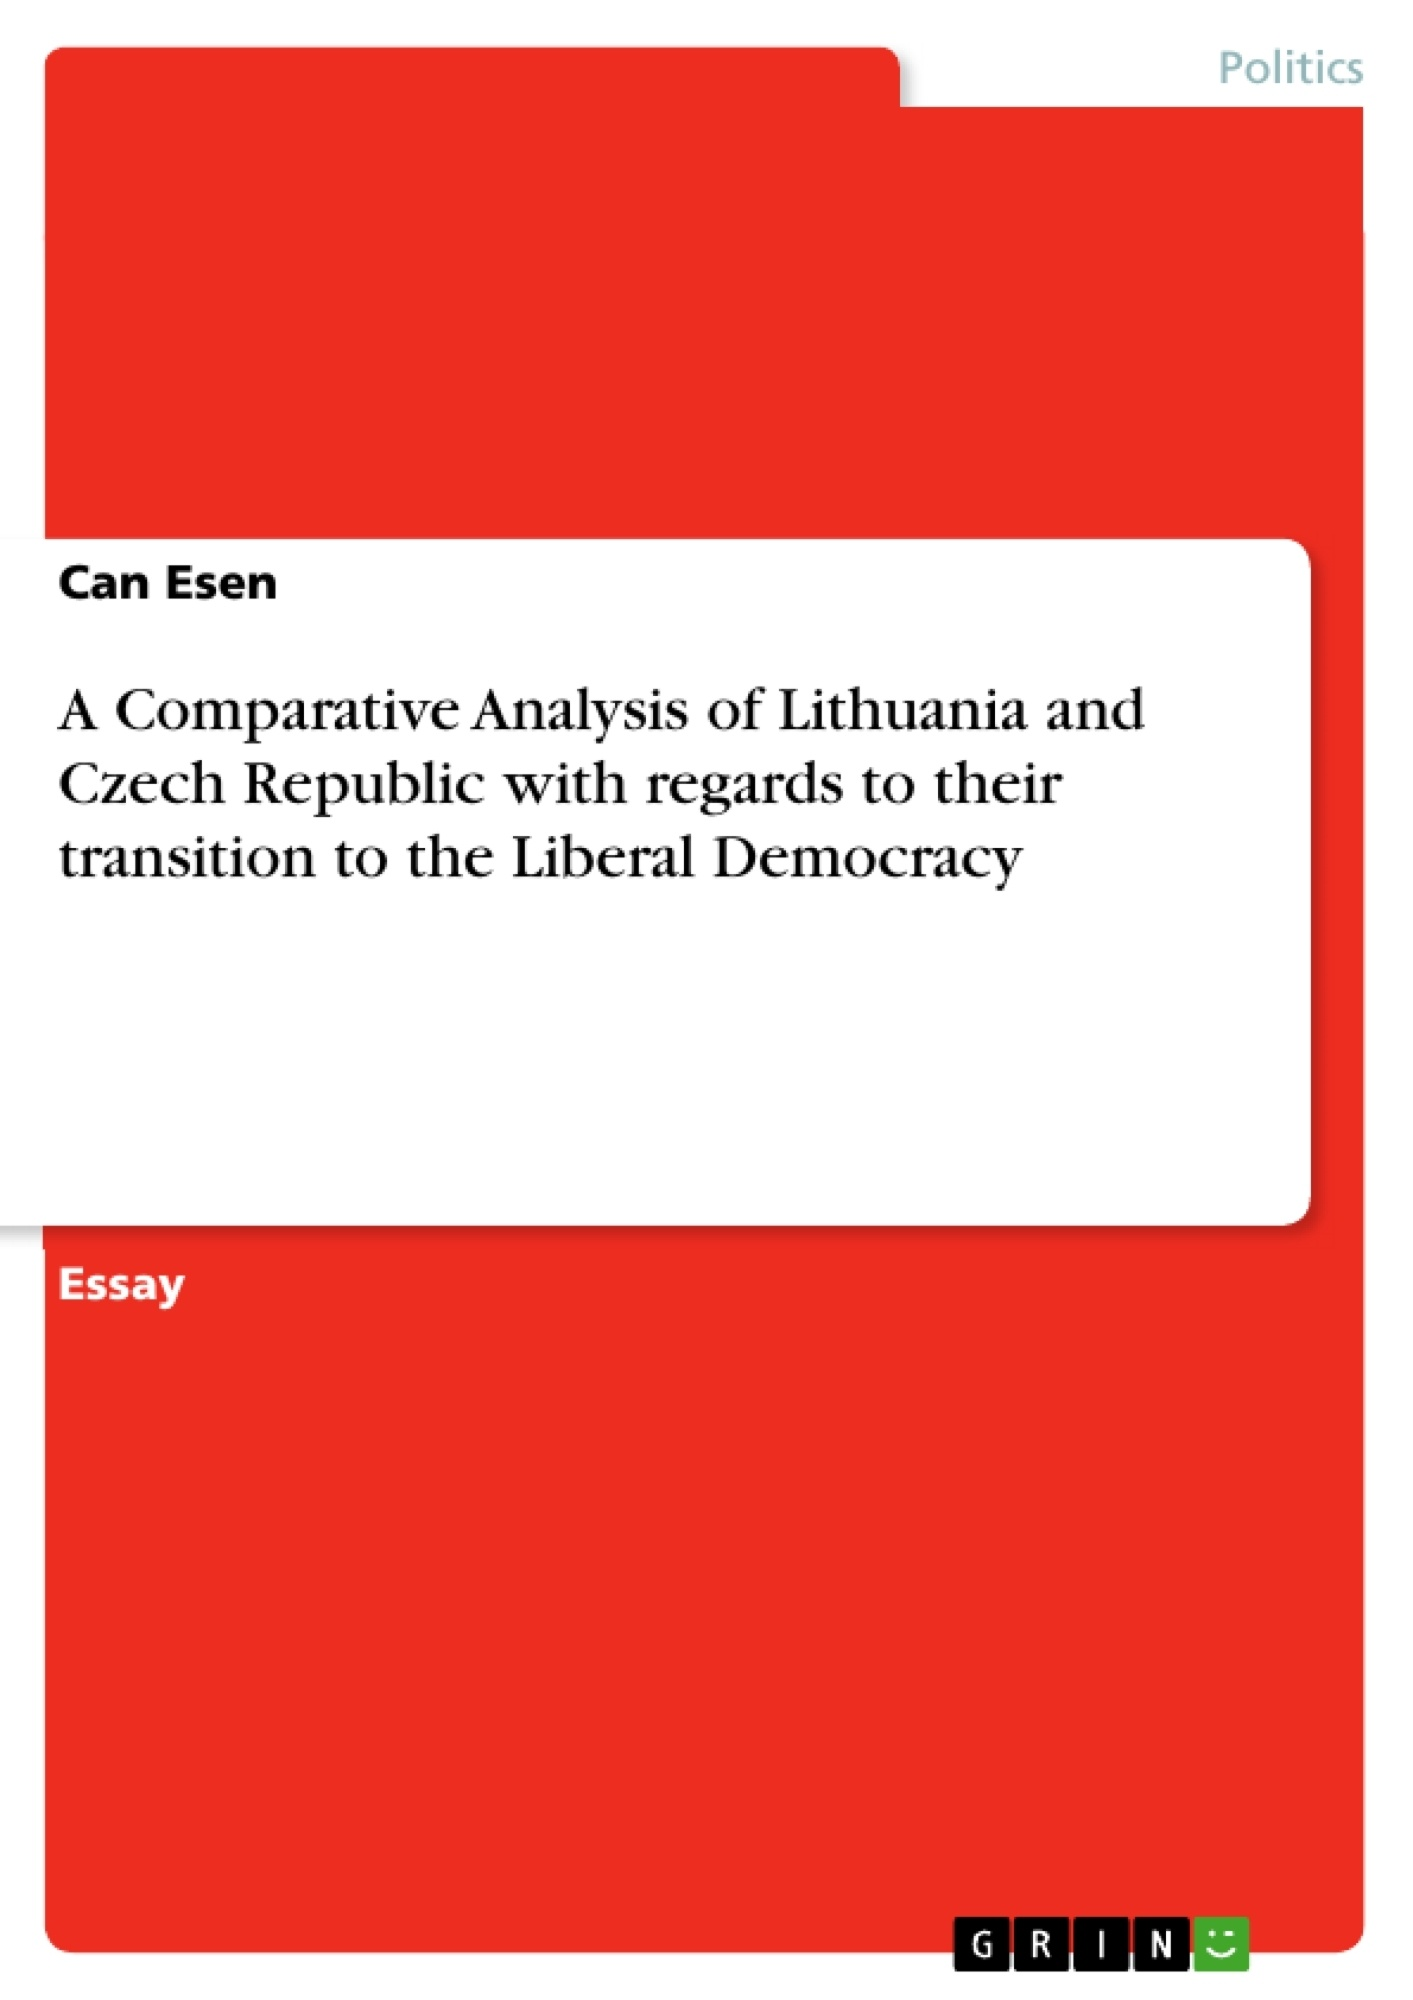 Title: A Comparative Analysis of Lithuania and Czech Republic with regards to their transition to the Liberal Democracy